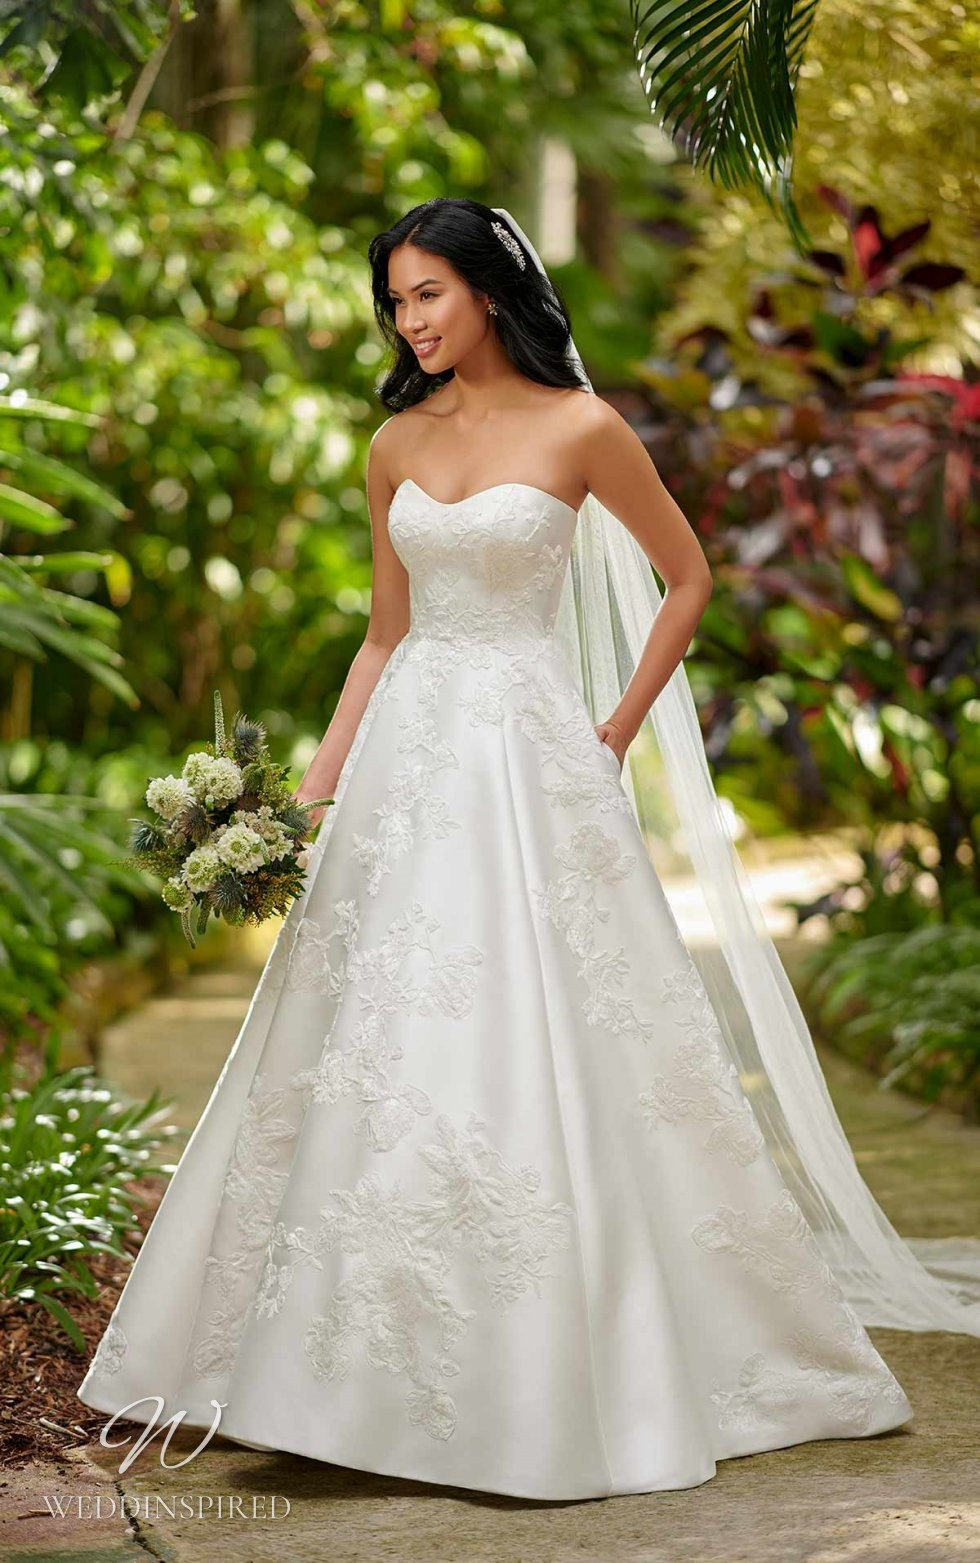 An Essense of Australia lace, silk and satin strapless ball gown wedding dress